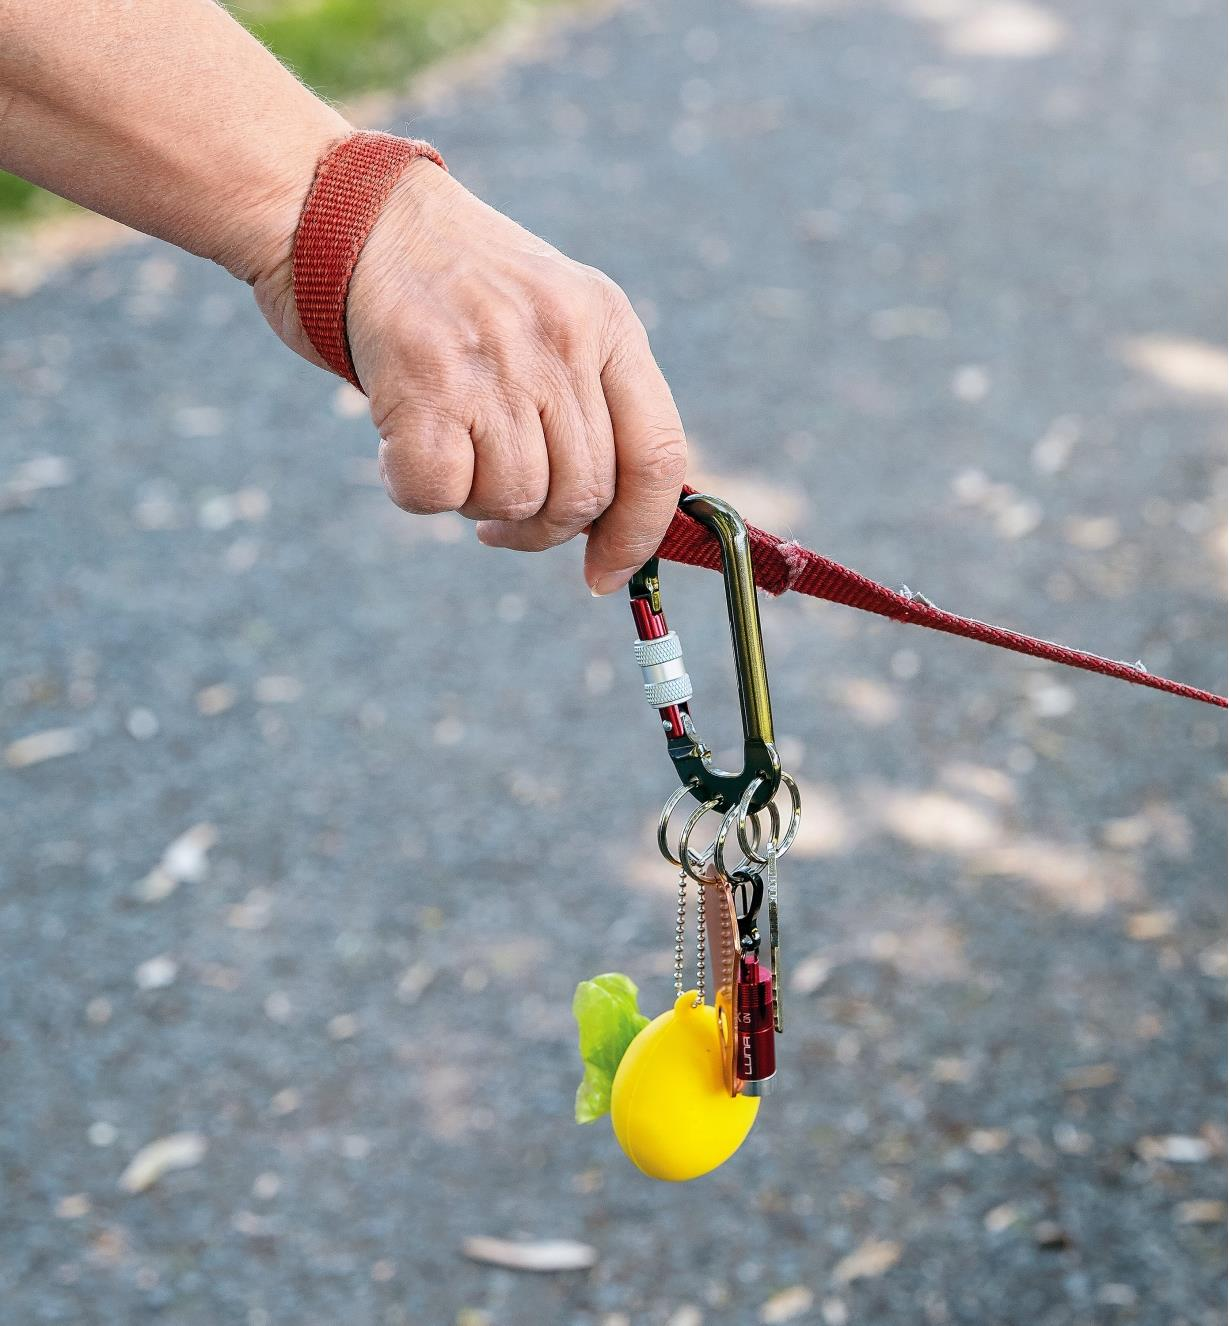 Split-Ring Locking Carabiner attaching a flashlight and a shopping bag pod to a dog leash handle